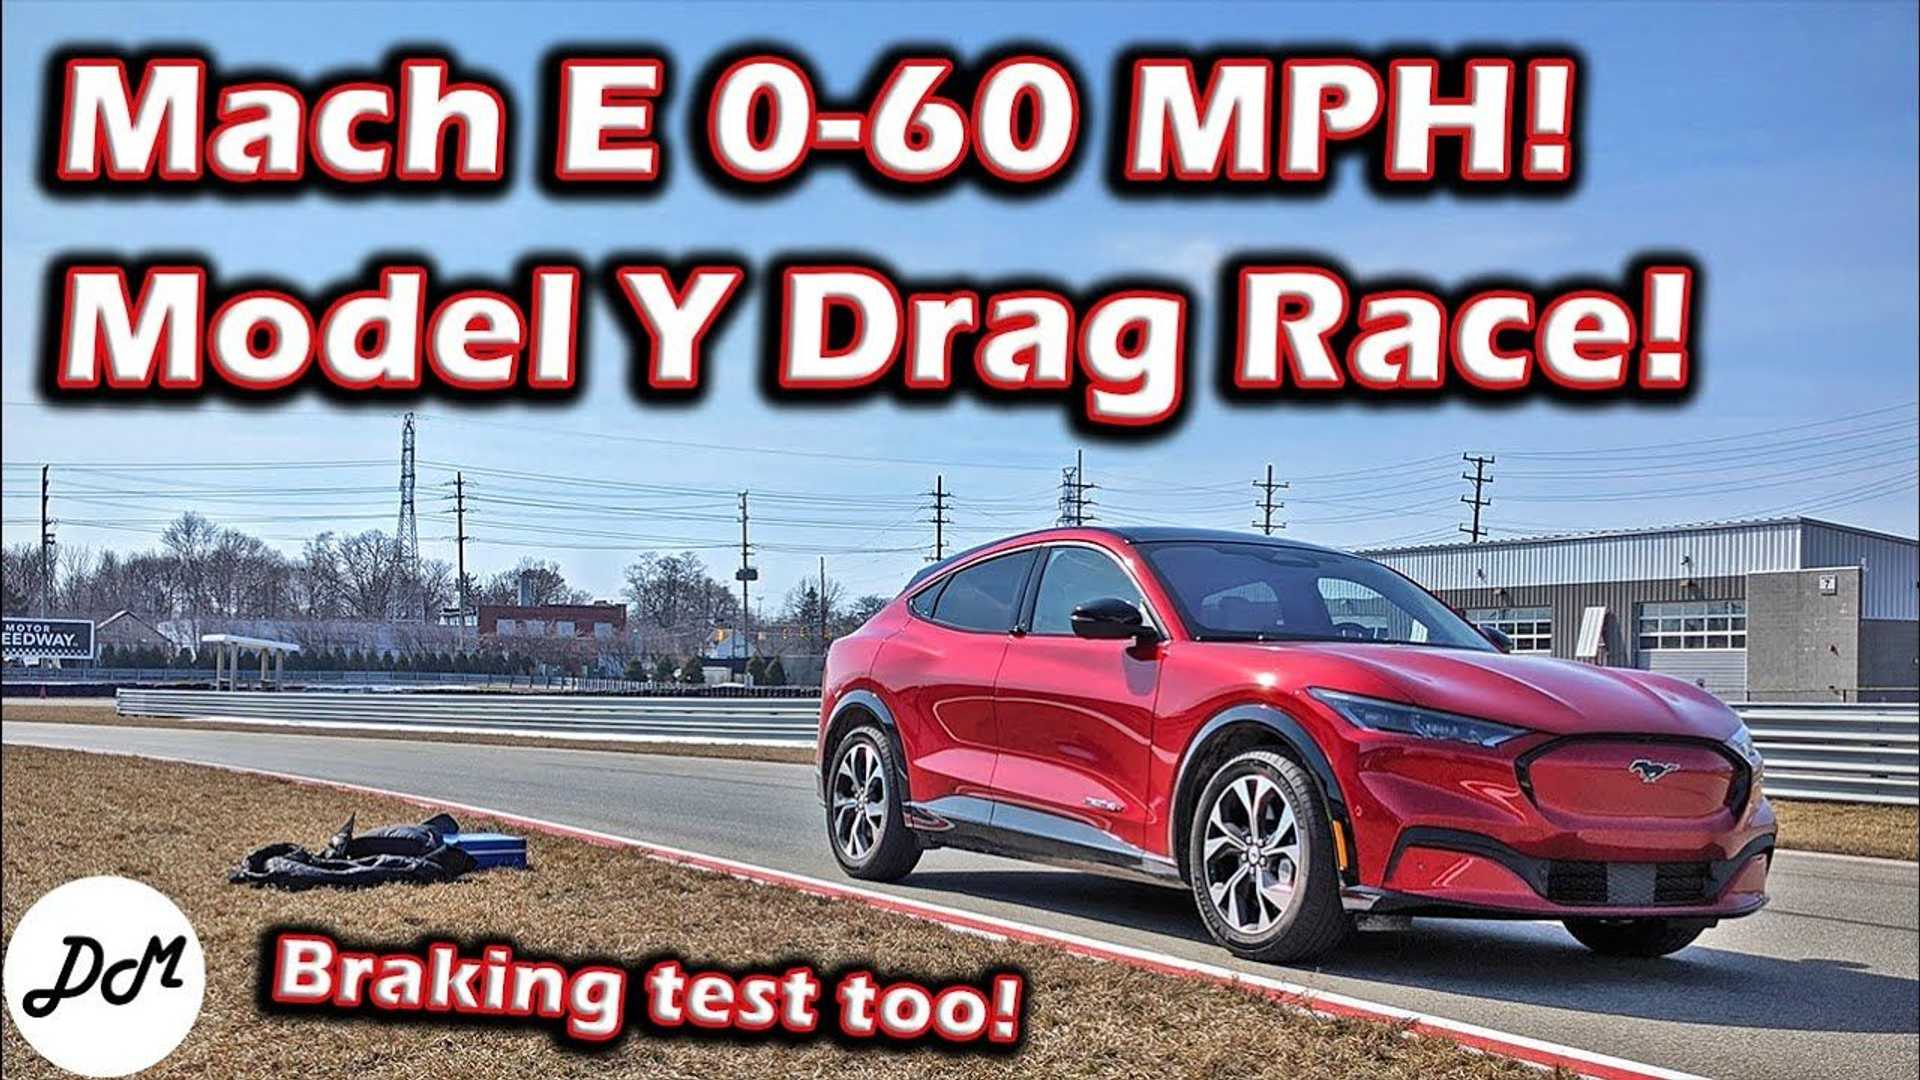 See Ford Mustang Mach-E Performance Testing And Race With Tesla Model... image